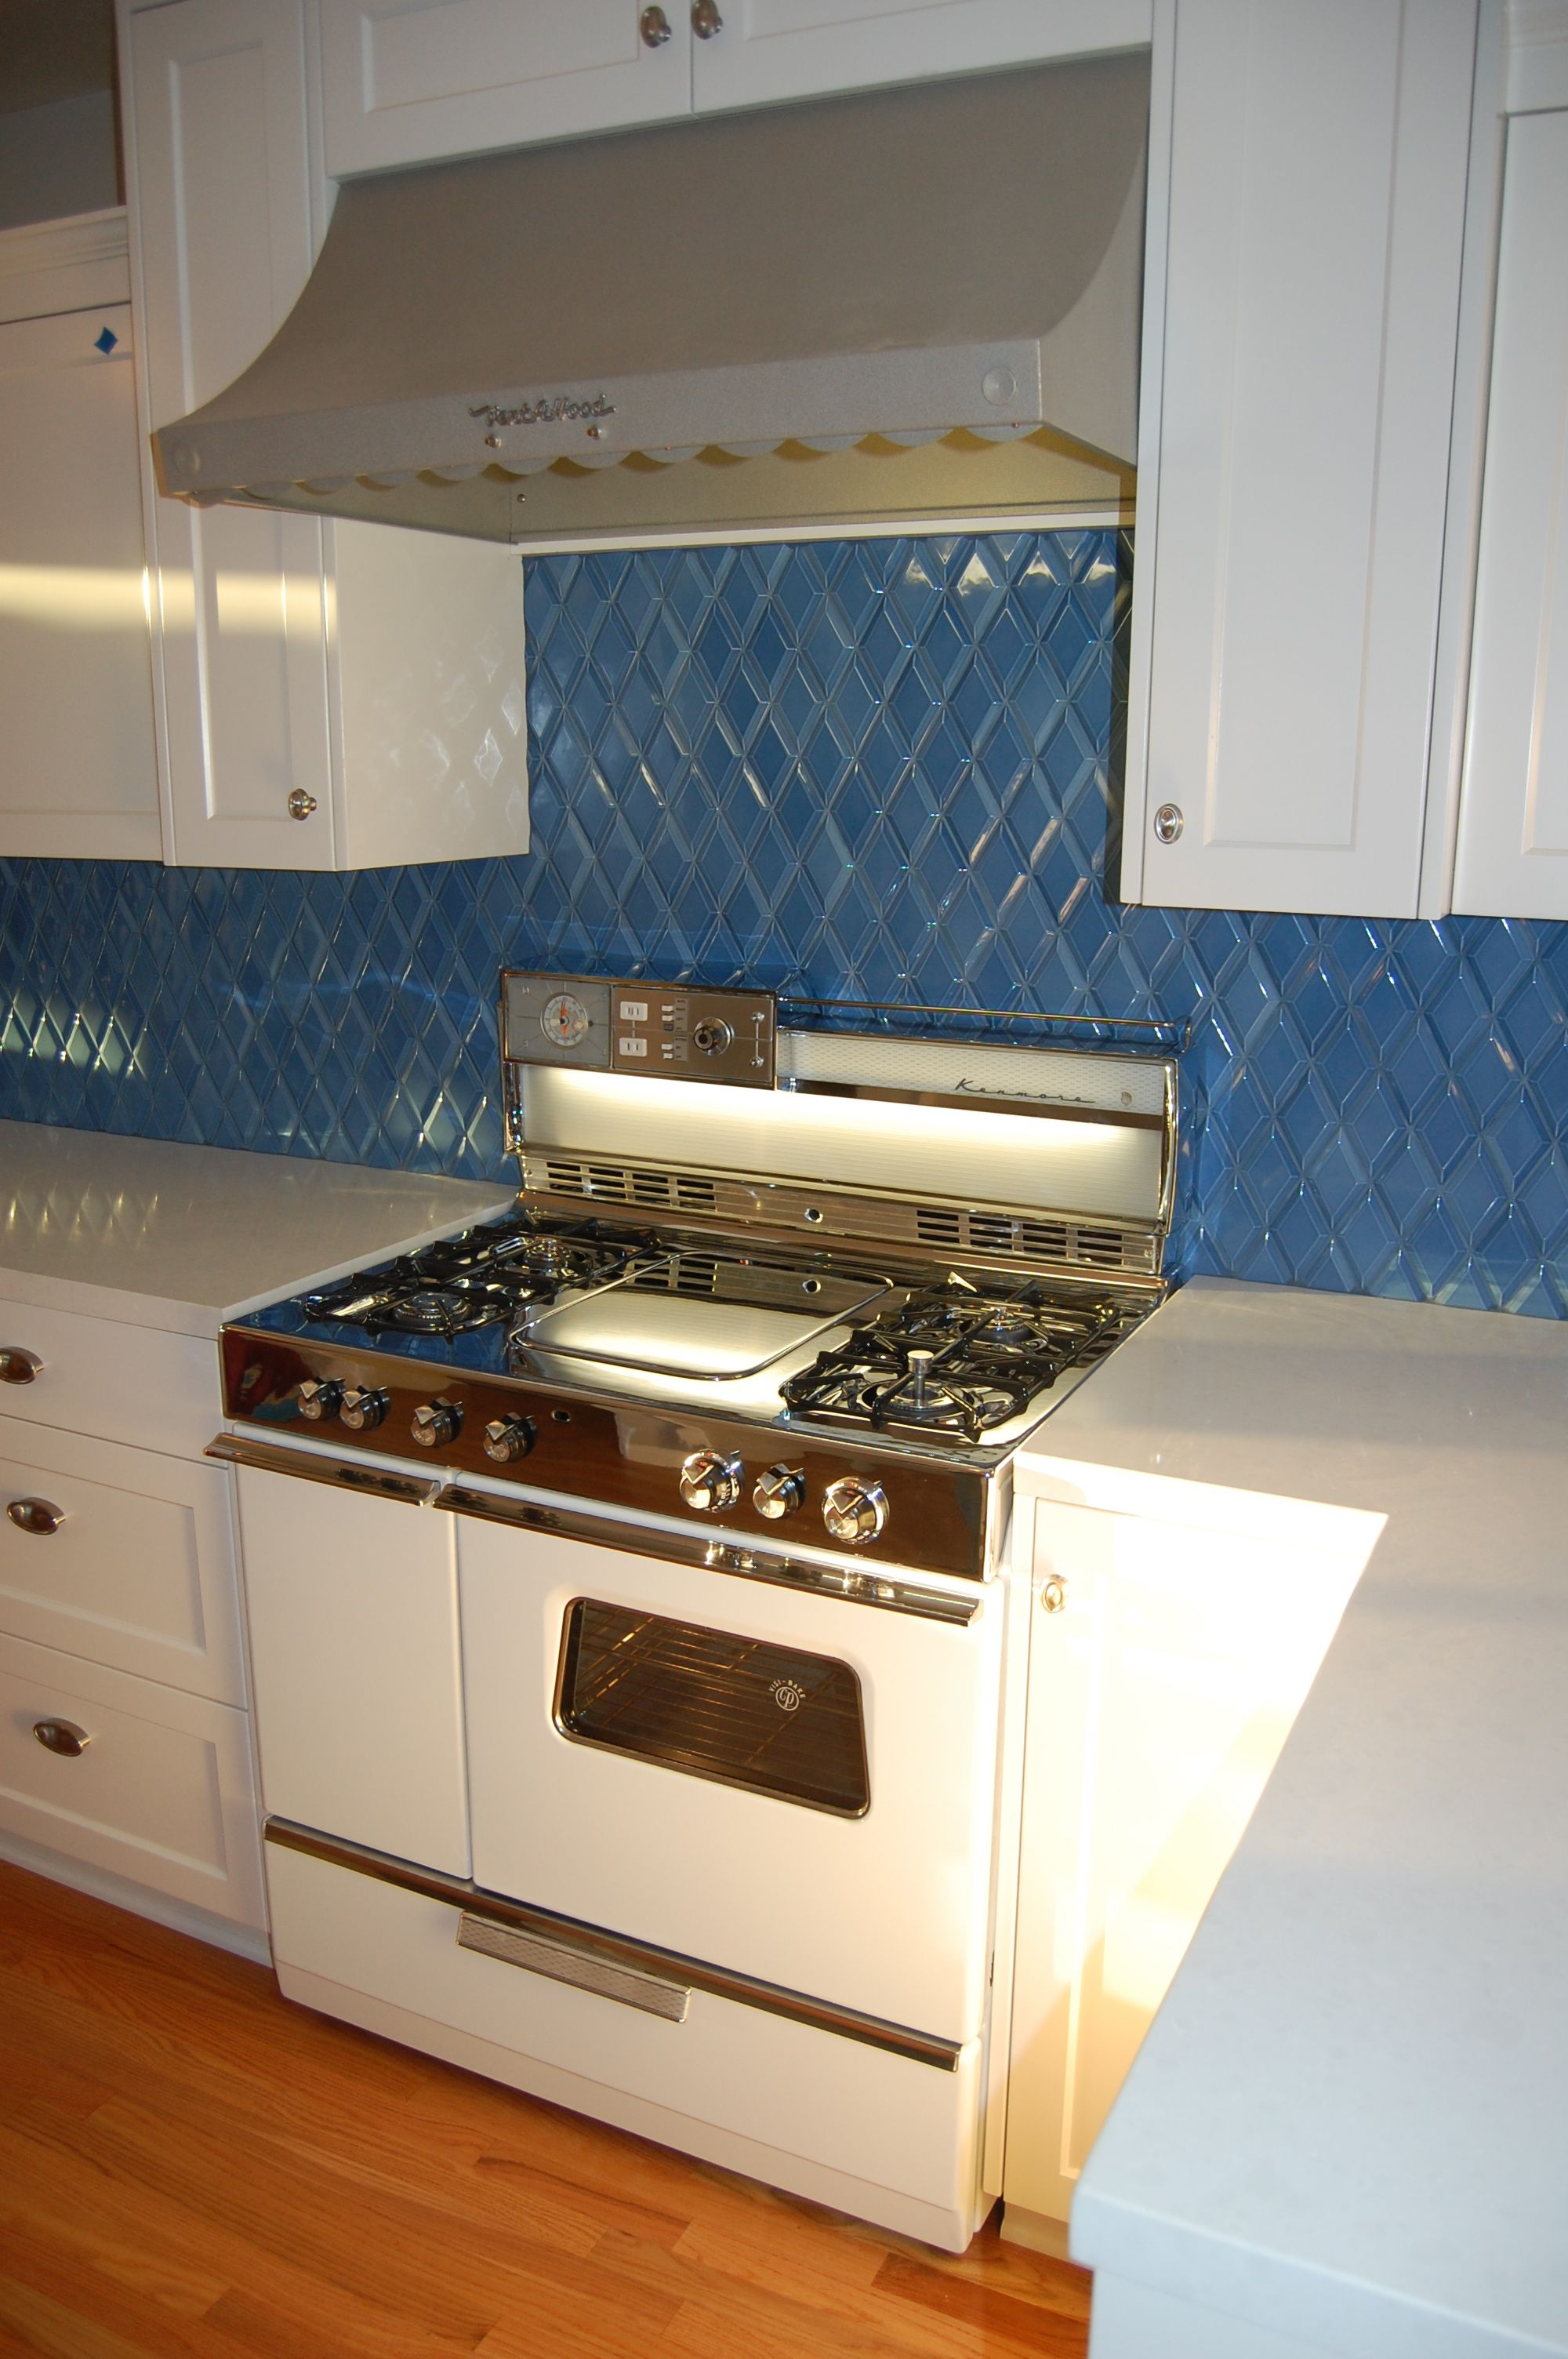 Early 1960s Kenmore Kitchen Kitchen Appliances Wall Oven